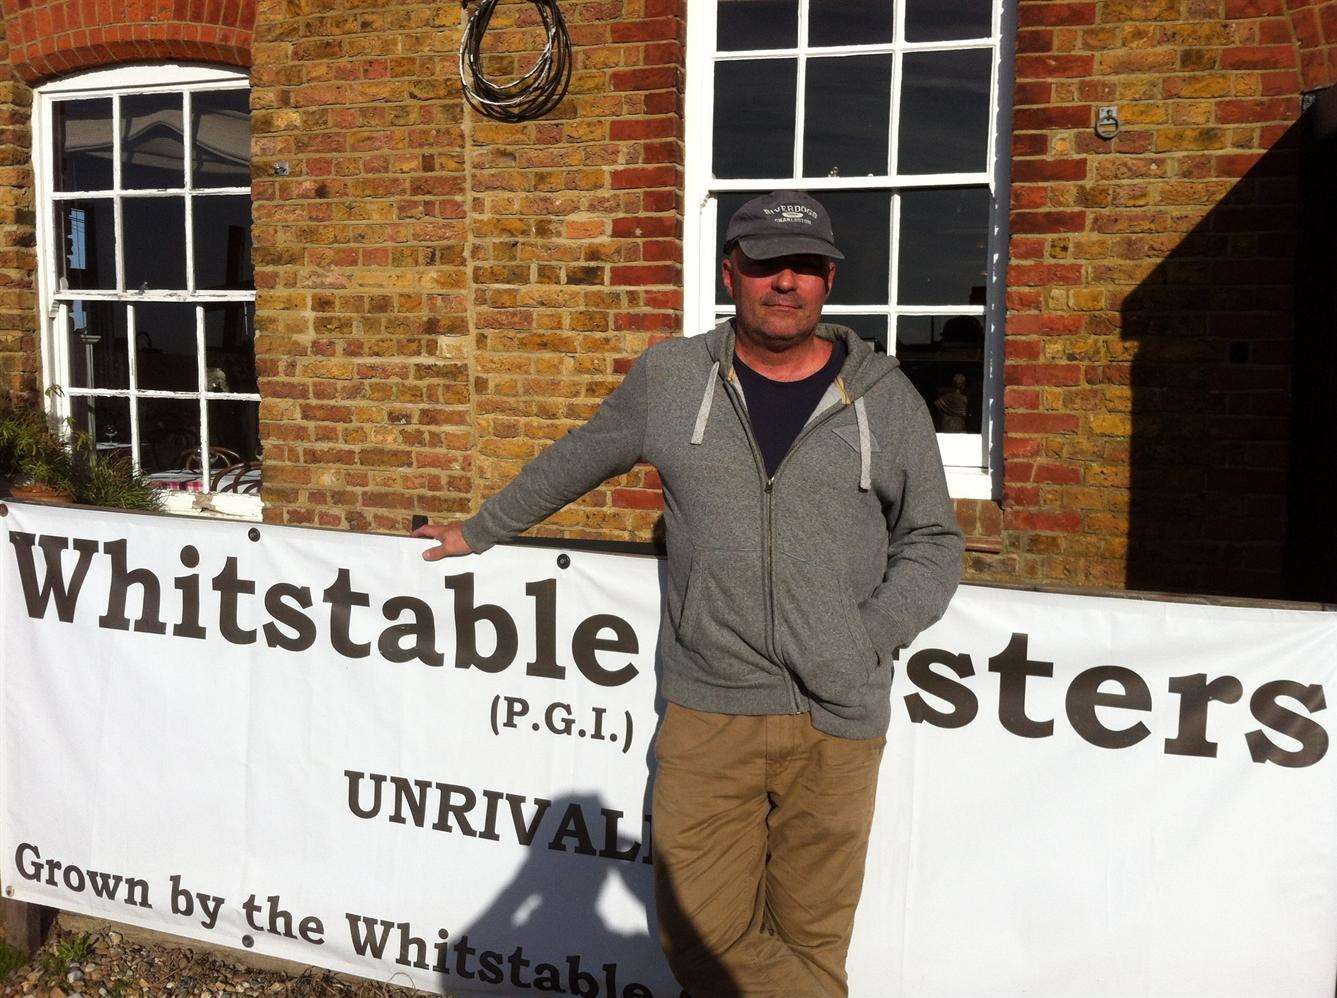 Richard Green from the Whitstable Oyster Company